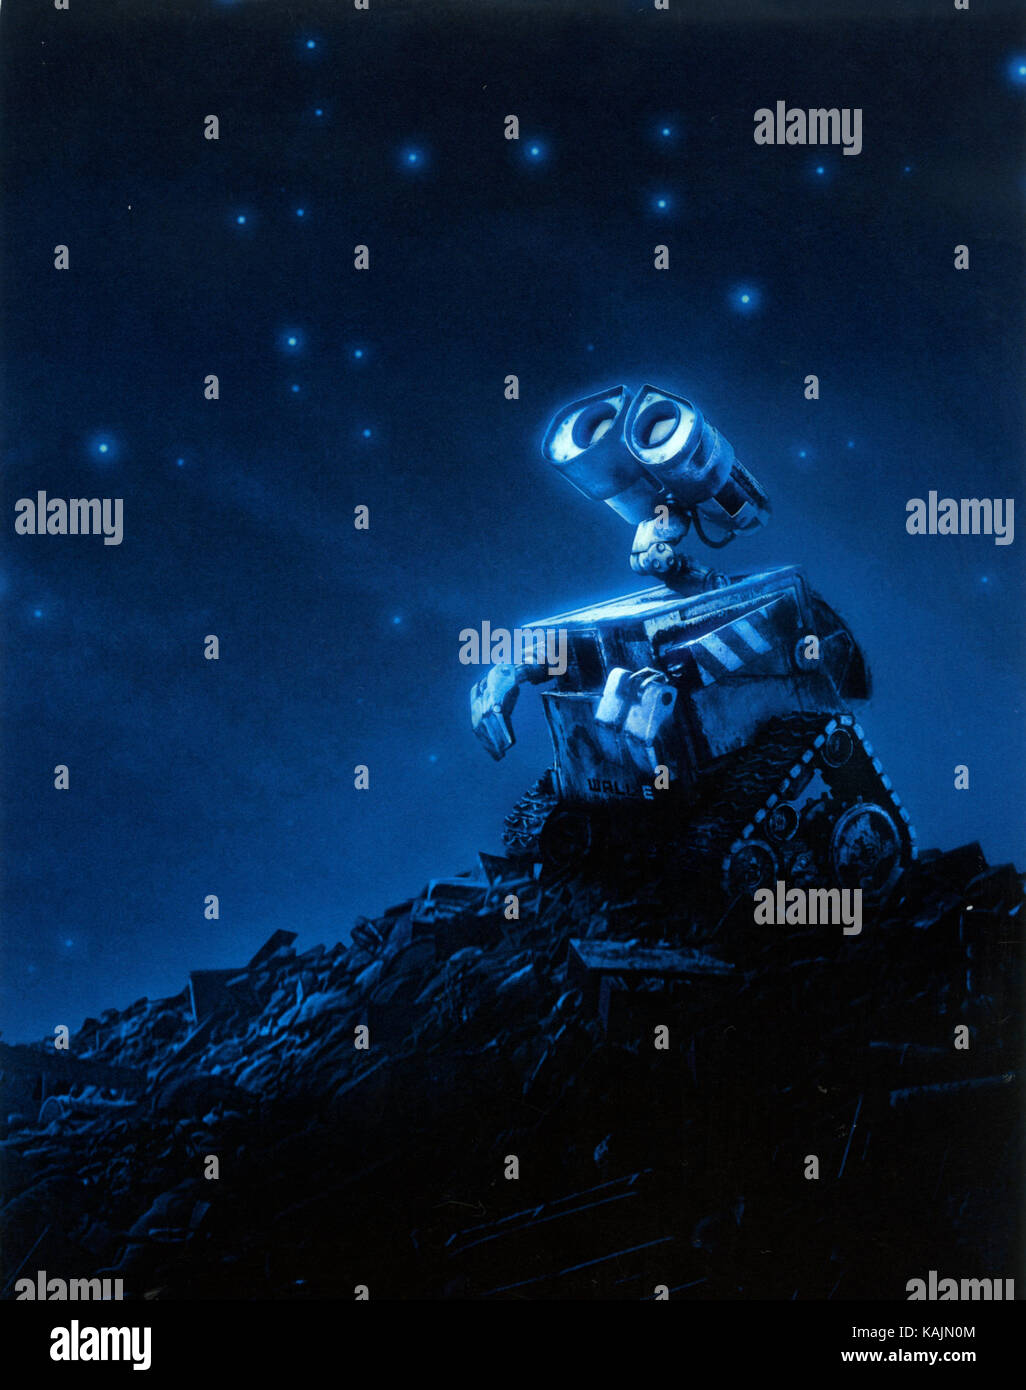 WALL-E  2008 Walt Disney Pictures computer-animation film - Stock Image